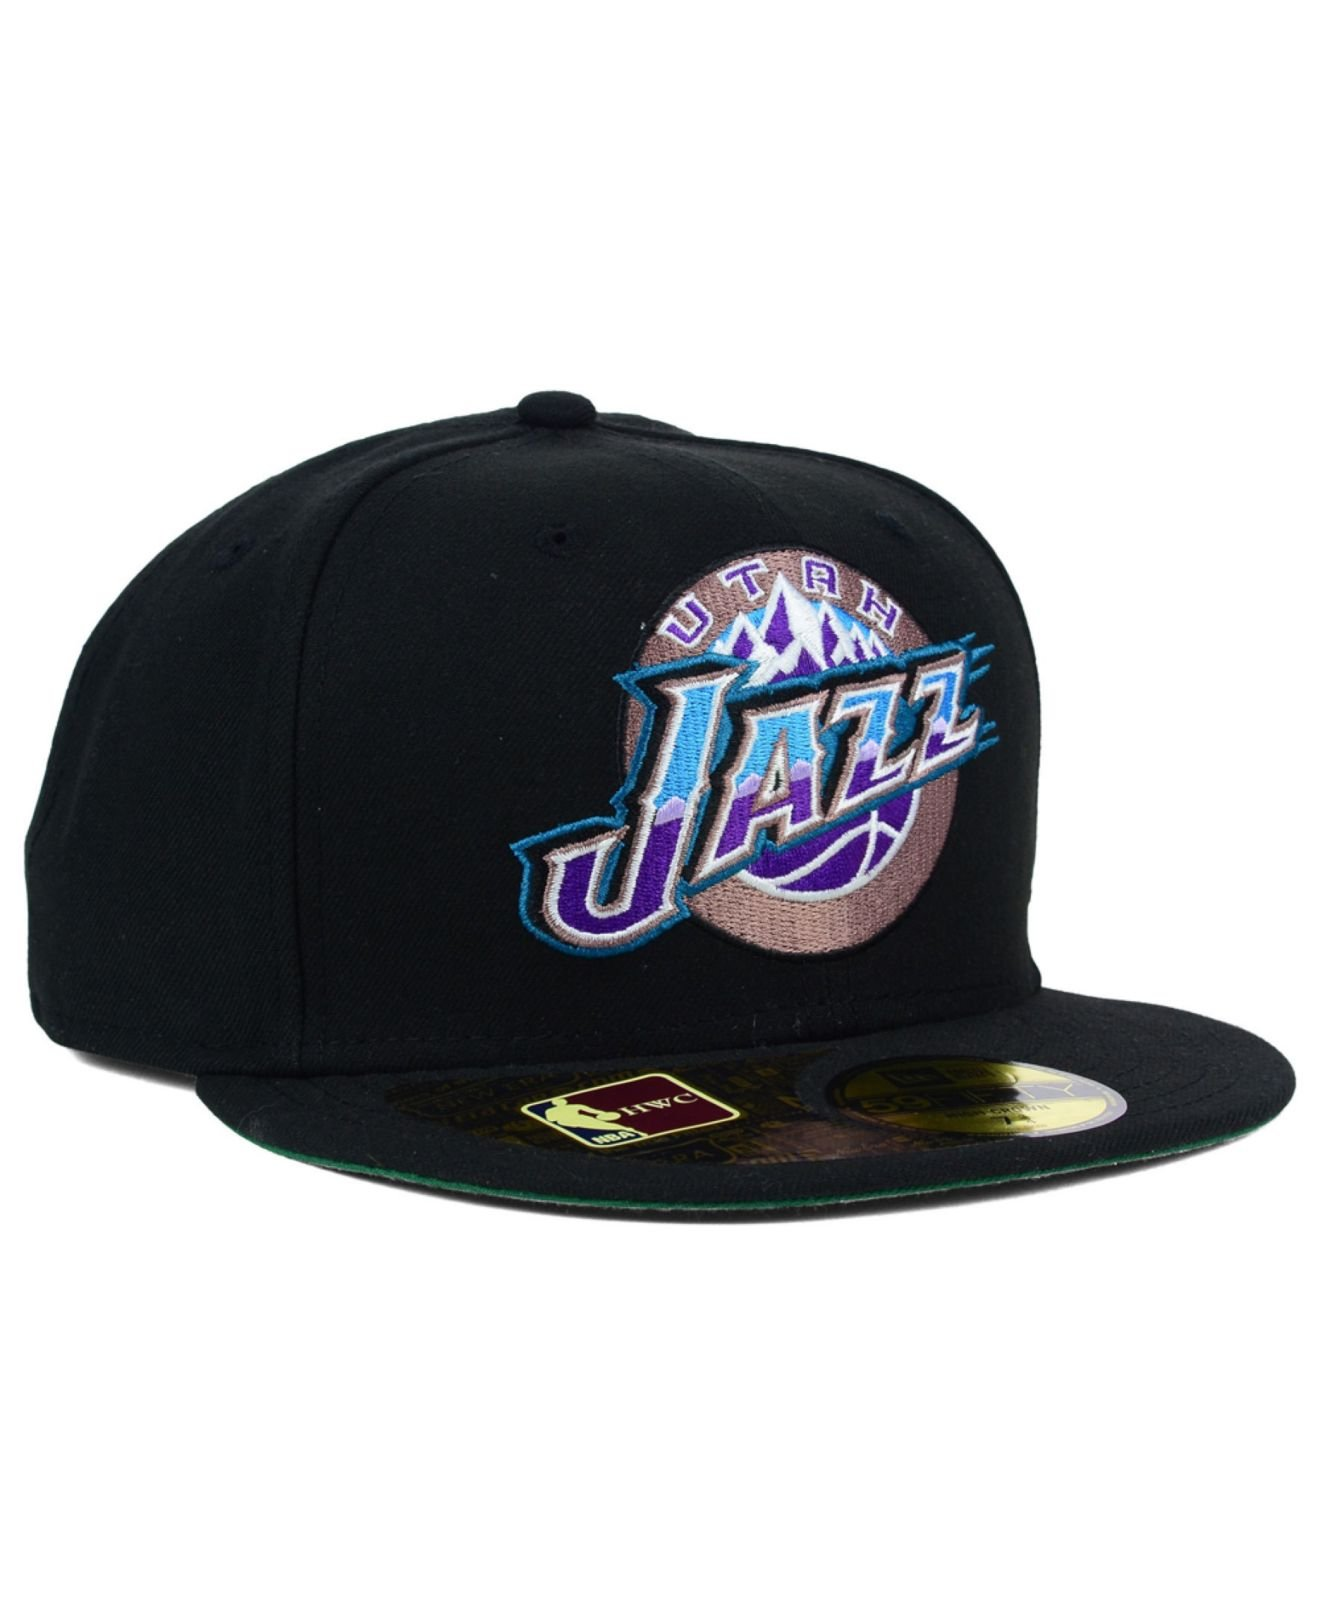 Lyst - KTZ Utah Jazz Retro 59Fifty Cap in Black for Men 4d0d23fedcf